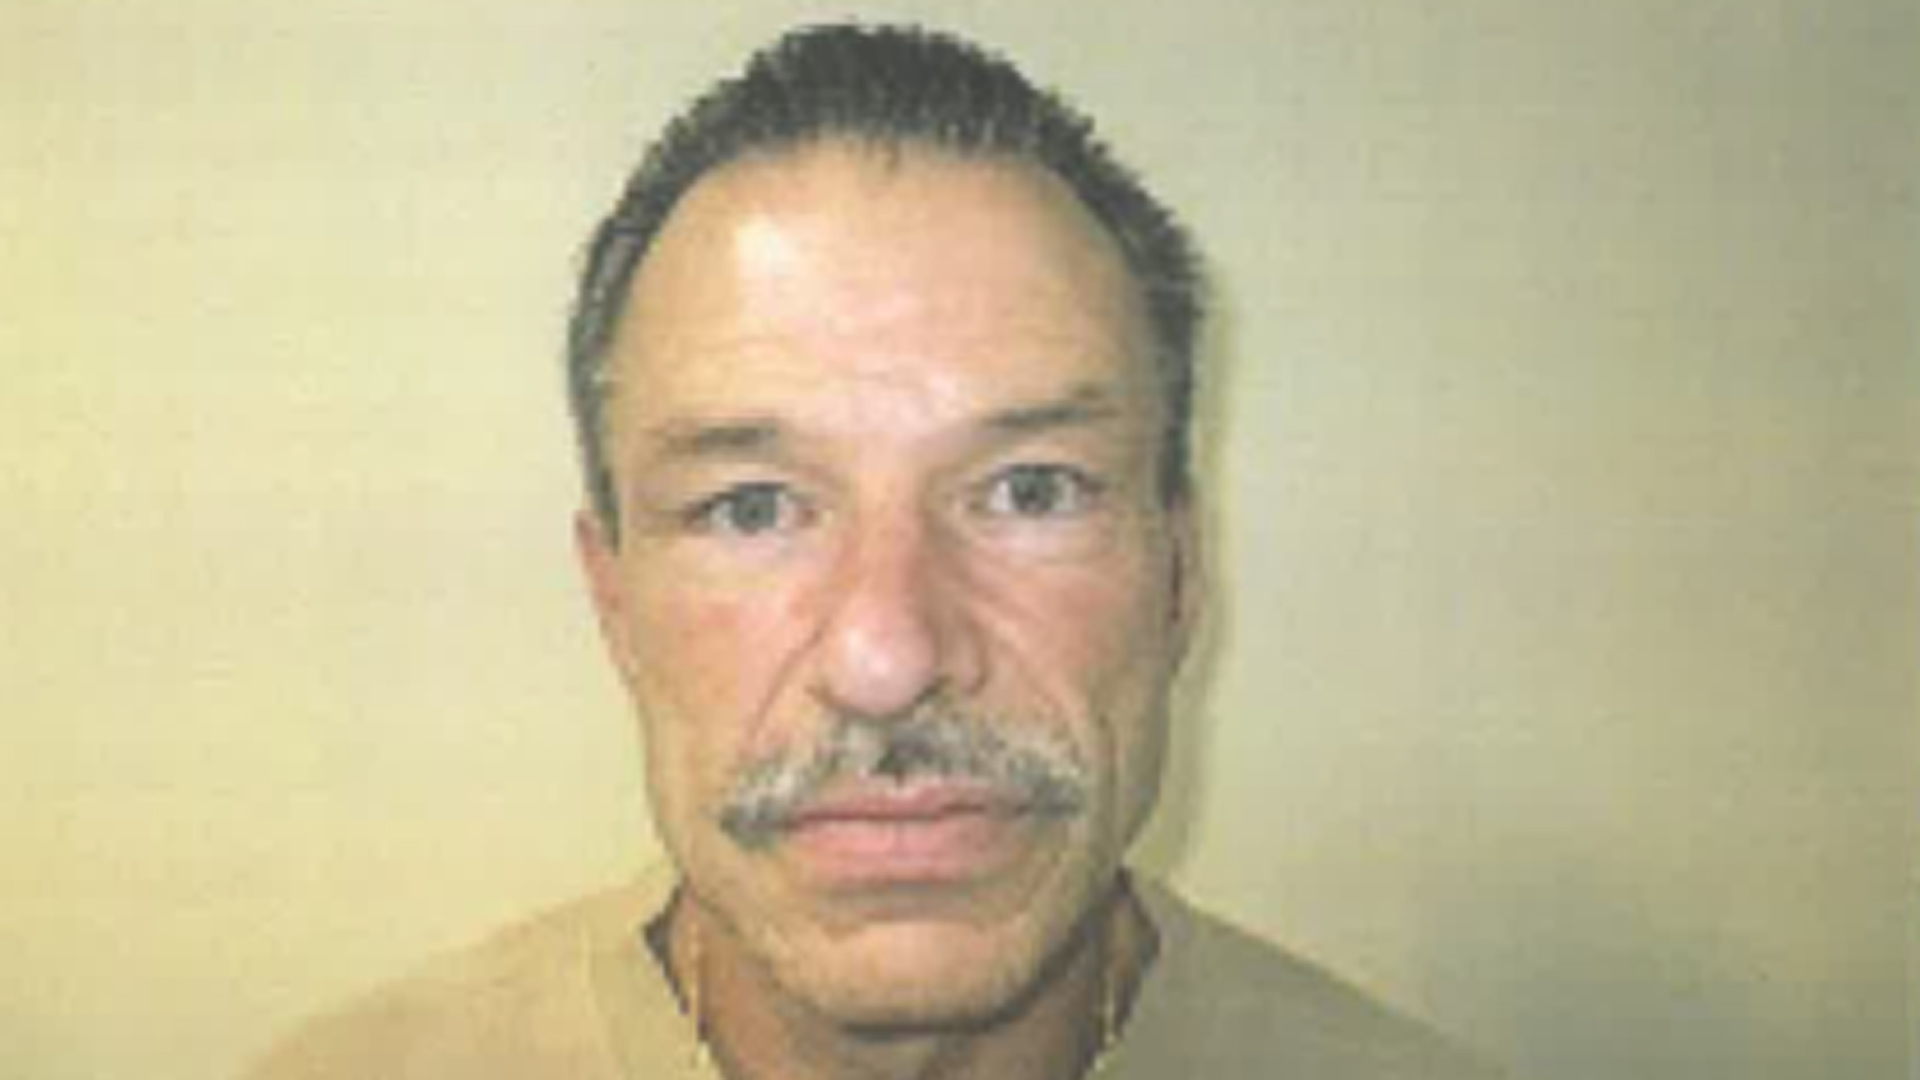 Ross Leo Wollschlager appears in an undated photo released by the San Bernardino County District Attorney's Office.